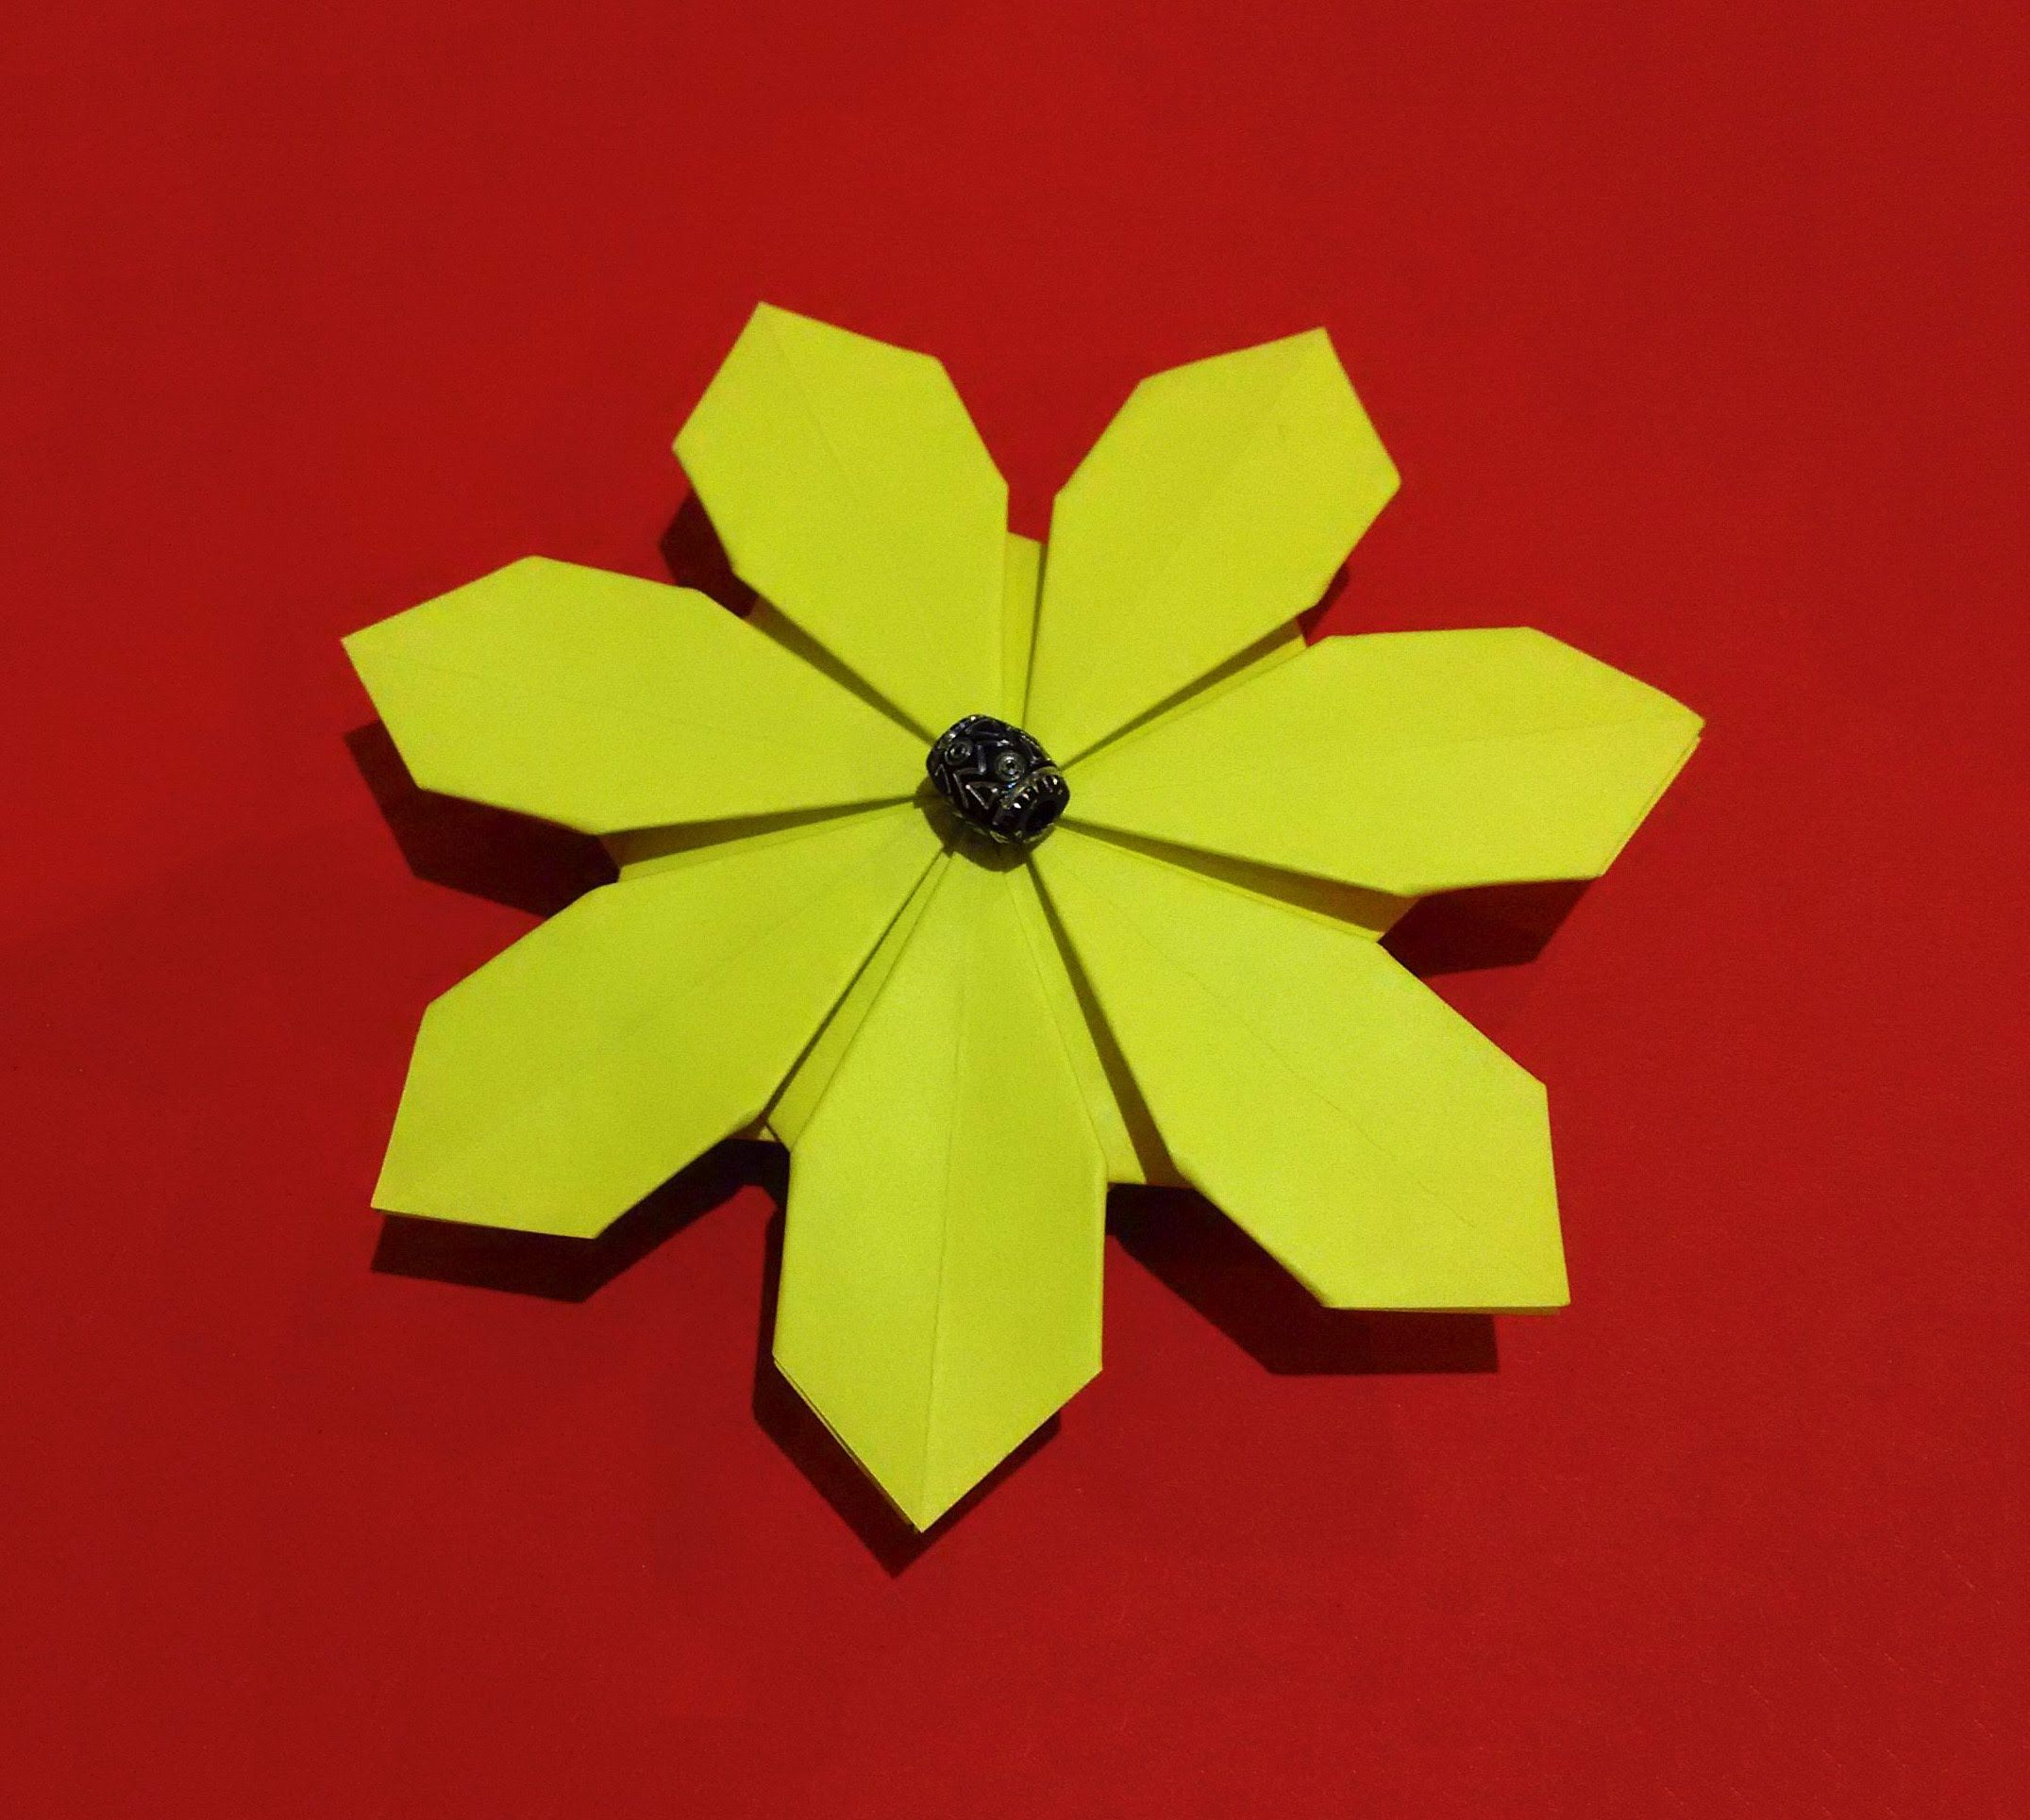 Ideas for gift decor christmas ornament ideas for mothers day gift christmas ornament ideas for mothers day gift ideas diy gift how to make an easy origami flower kusudama for kids easy and rich pap mightylinksfo